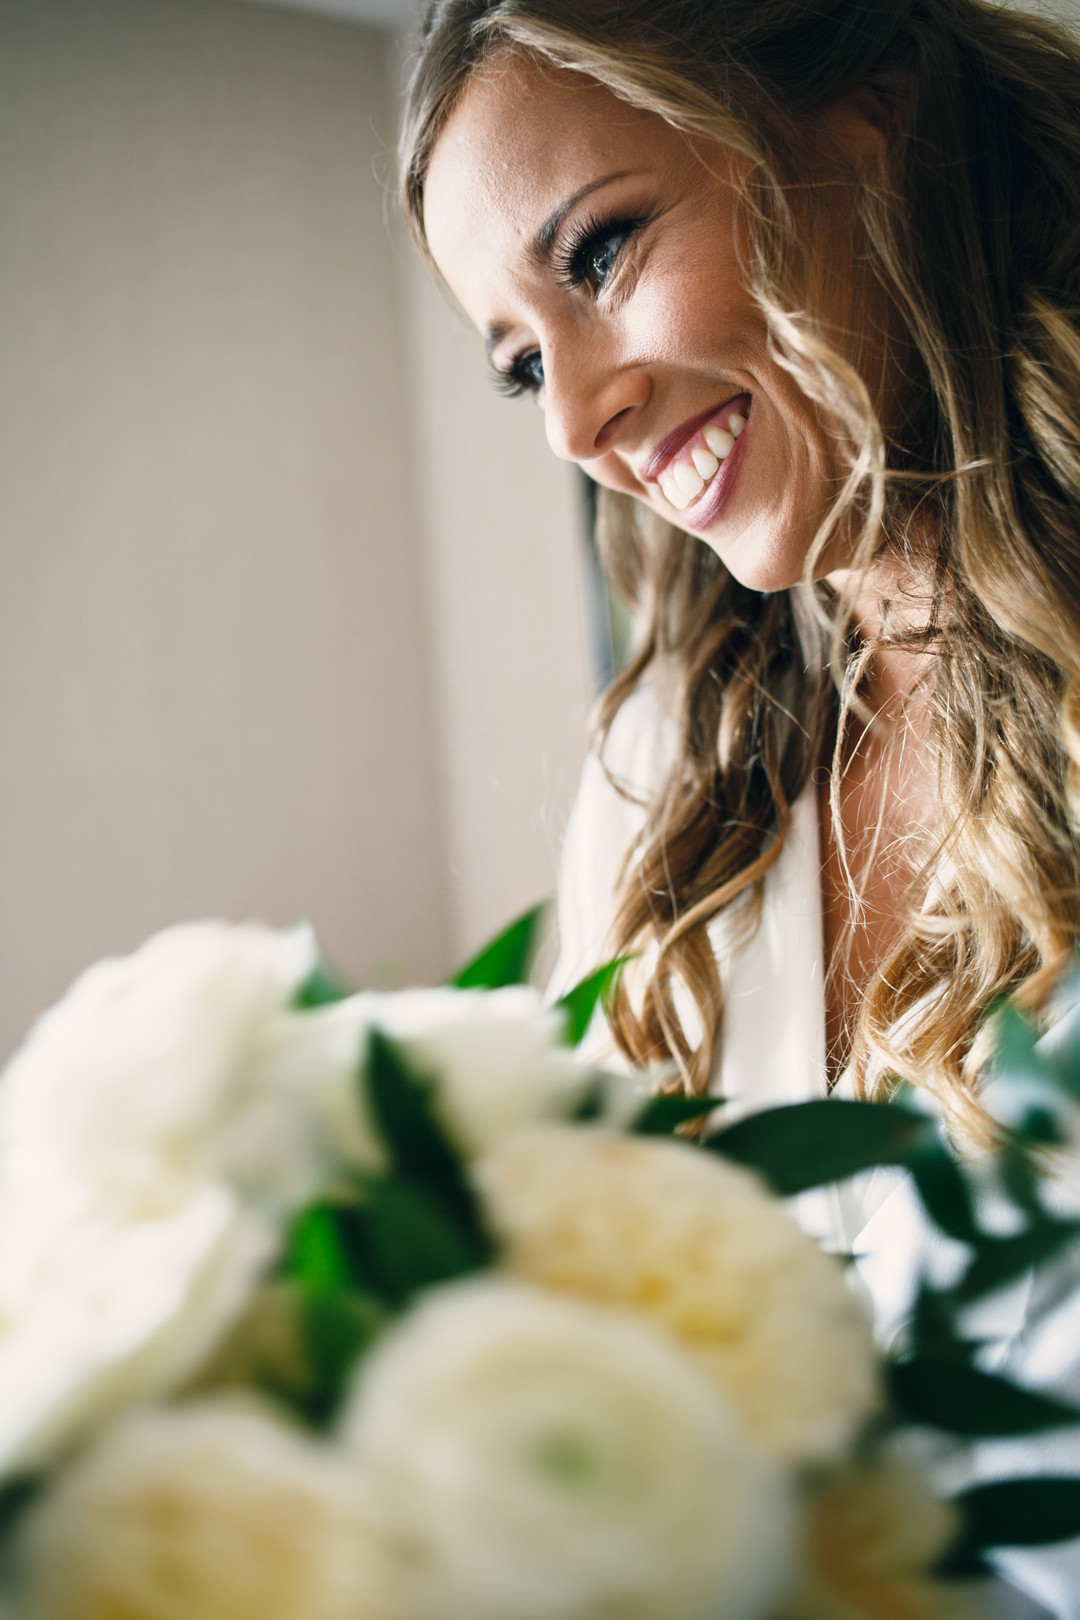 Chic Chicago fall wedding captured by Cinder & Vin Photography. See more fall wedding ideas at CHItheeWED.com!